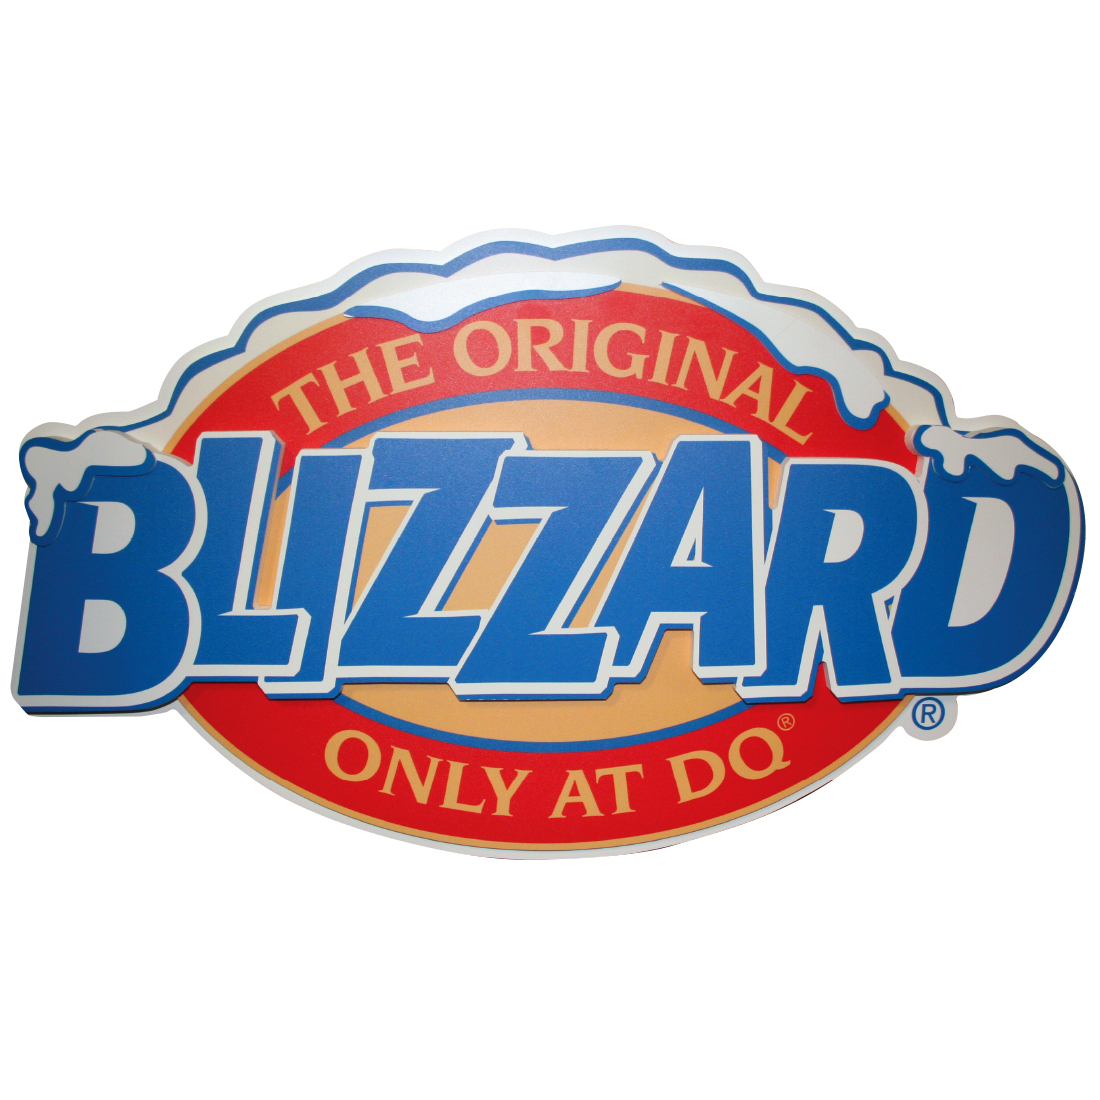 blizzard only at dQ png logo #4662